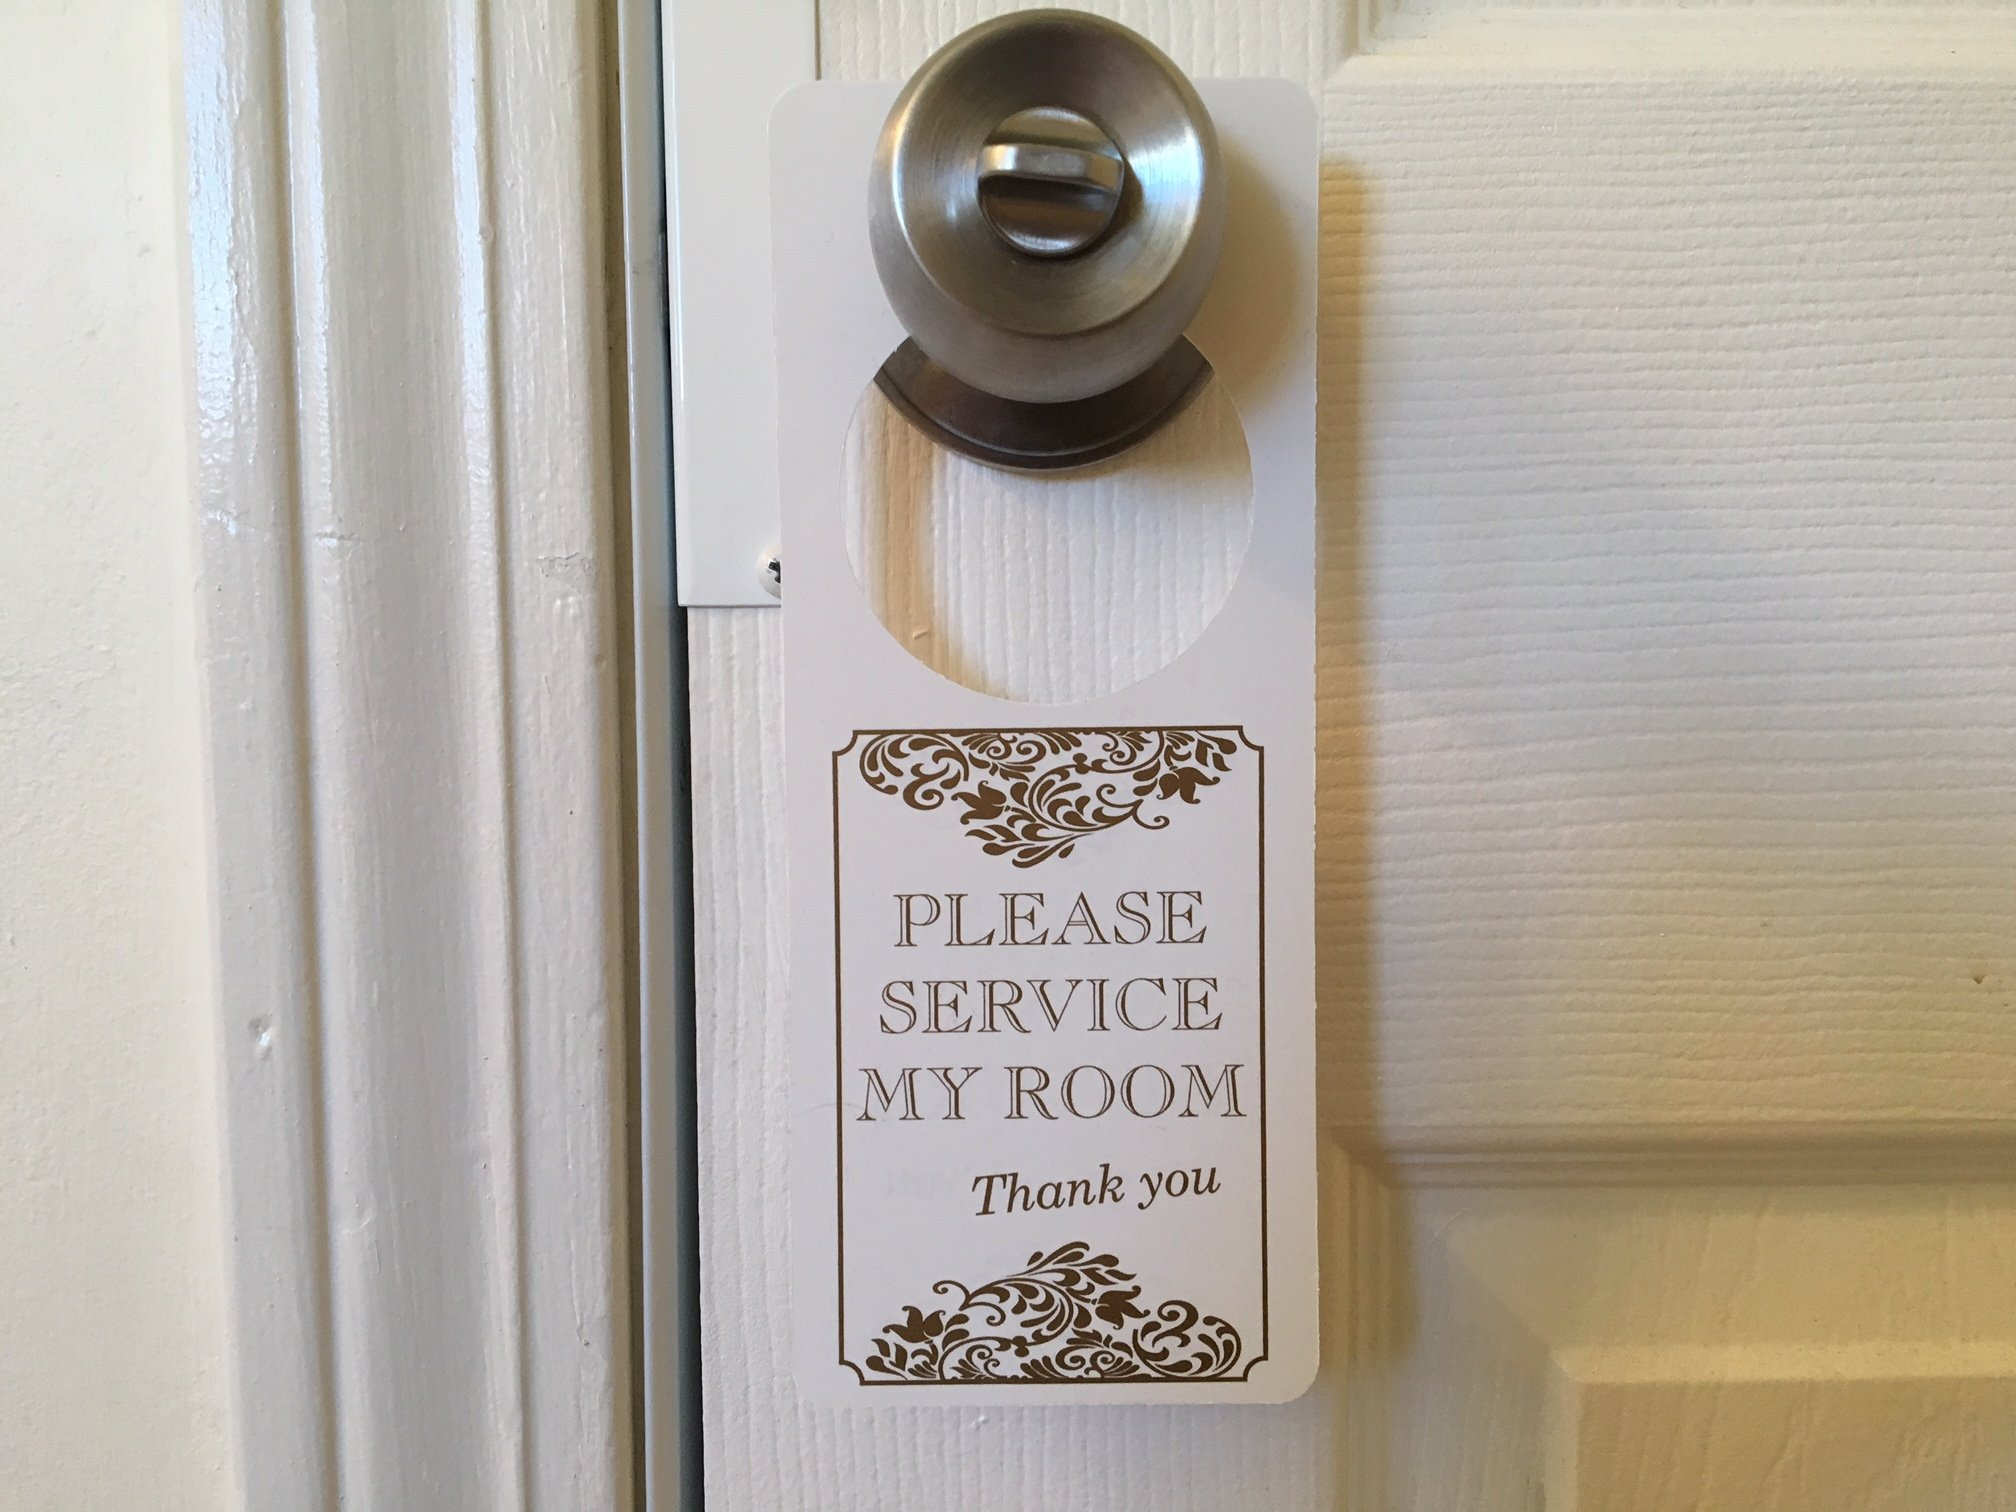 SecurePro Signs ''Do Not Disturb''/''Please Service Room'' Premium Quality PVC Door Hanger; Metallic Gold Text on Solid White Background; 3.25'' Wide x 8'' Tall (5)